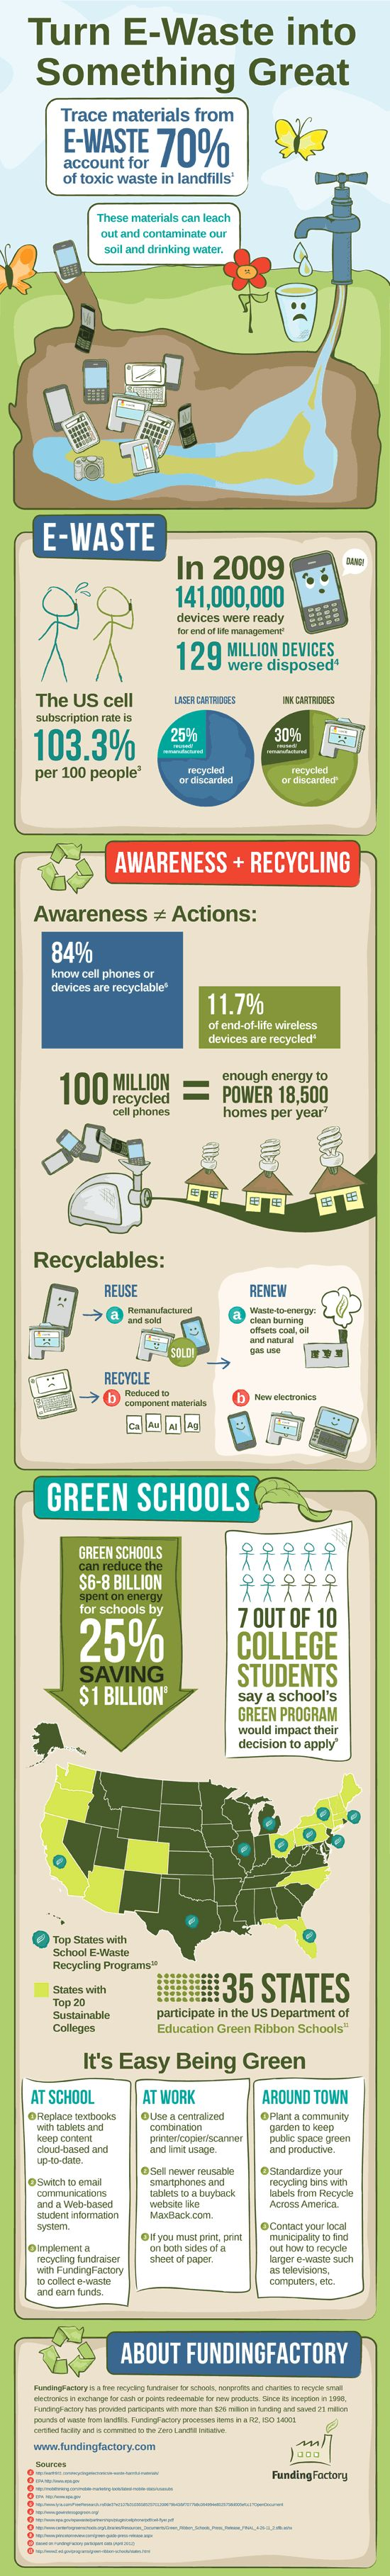 Turn e-Waste into Something Great